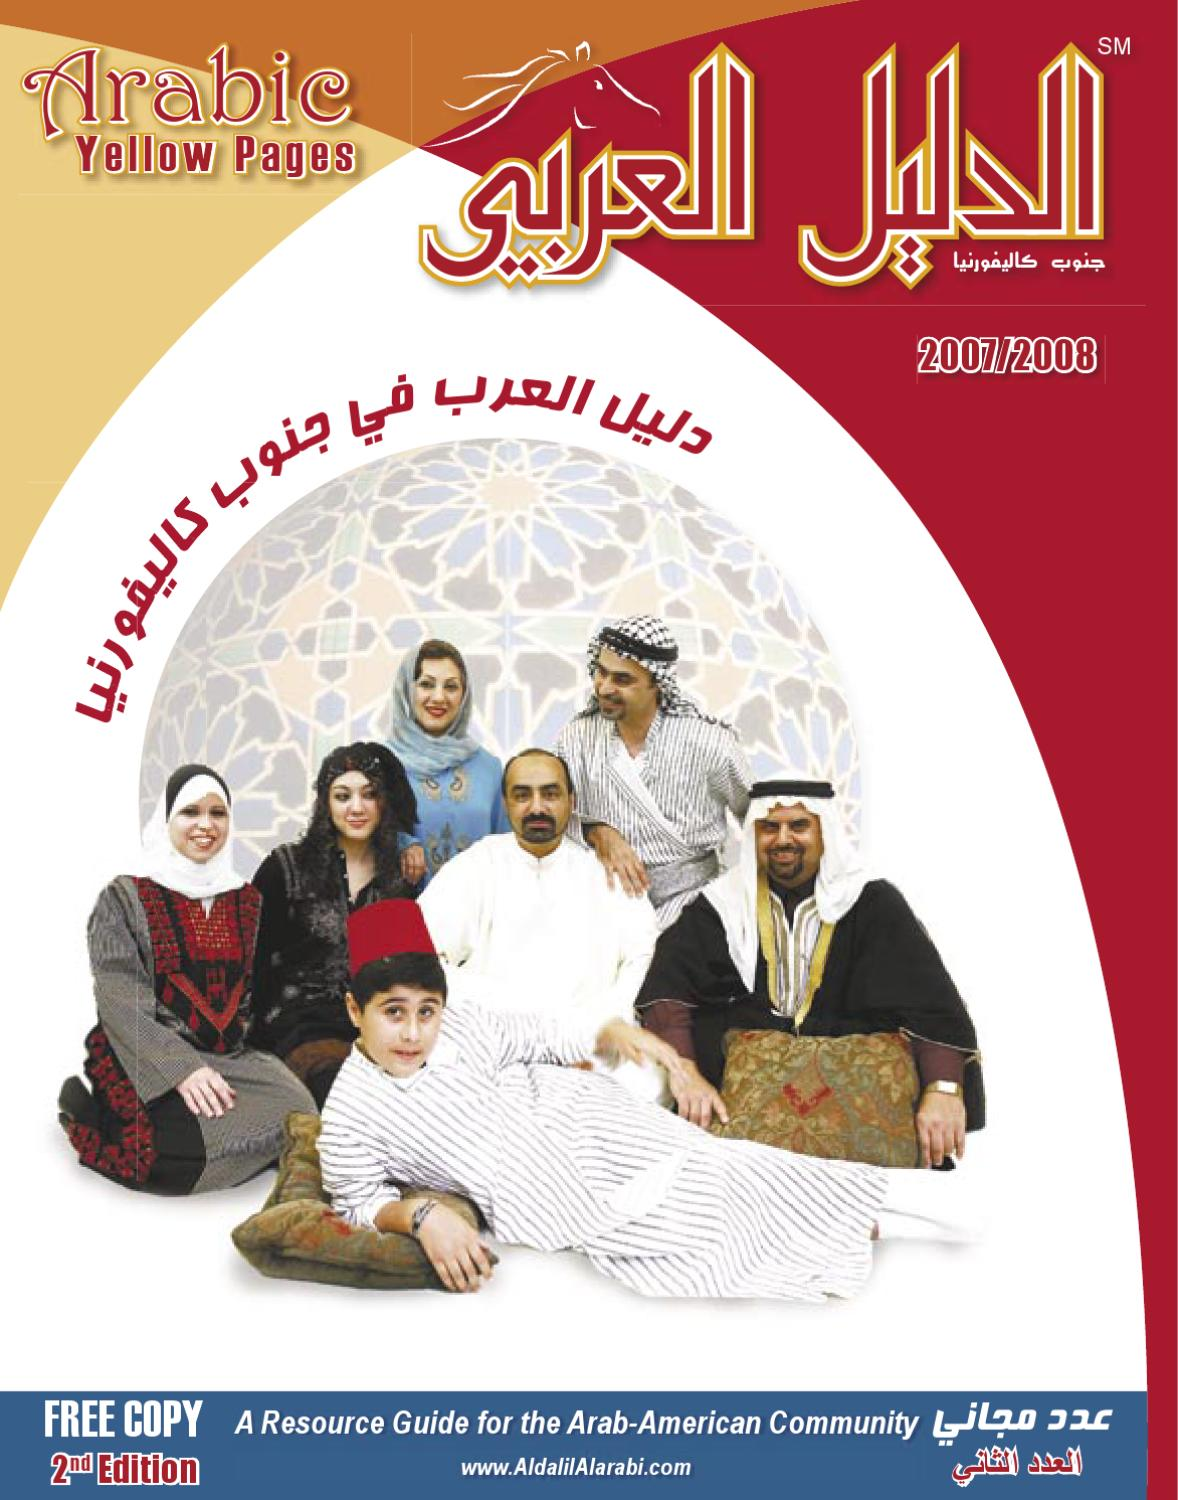 36f16188c Arabic Yellow Pages 2007/2008 by Arabesque Media & Breek Media - issuu